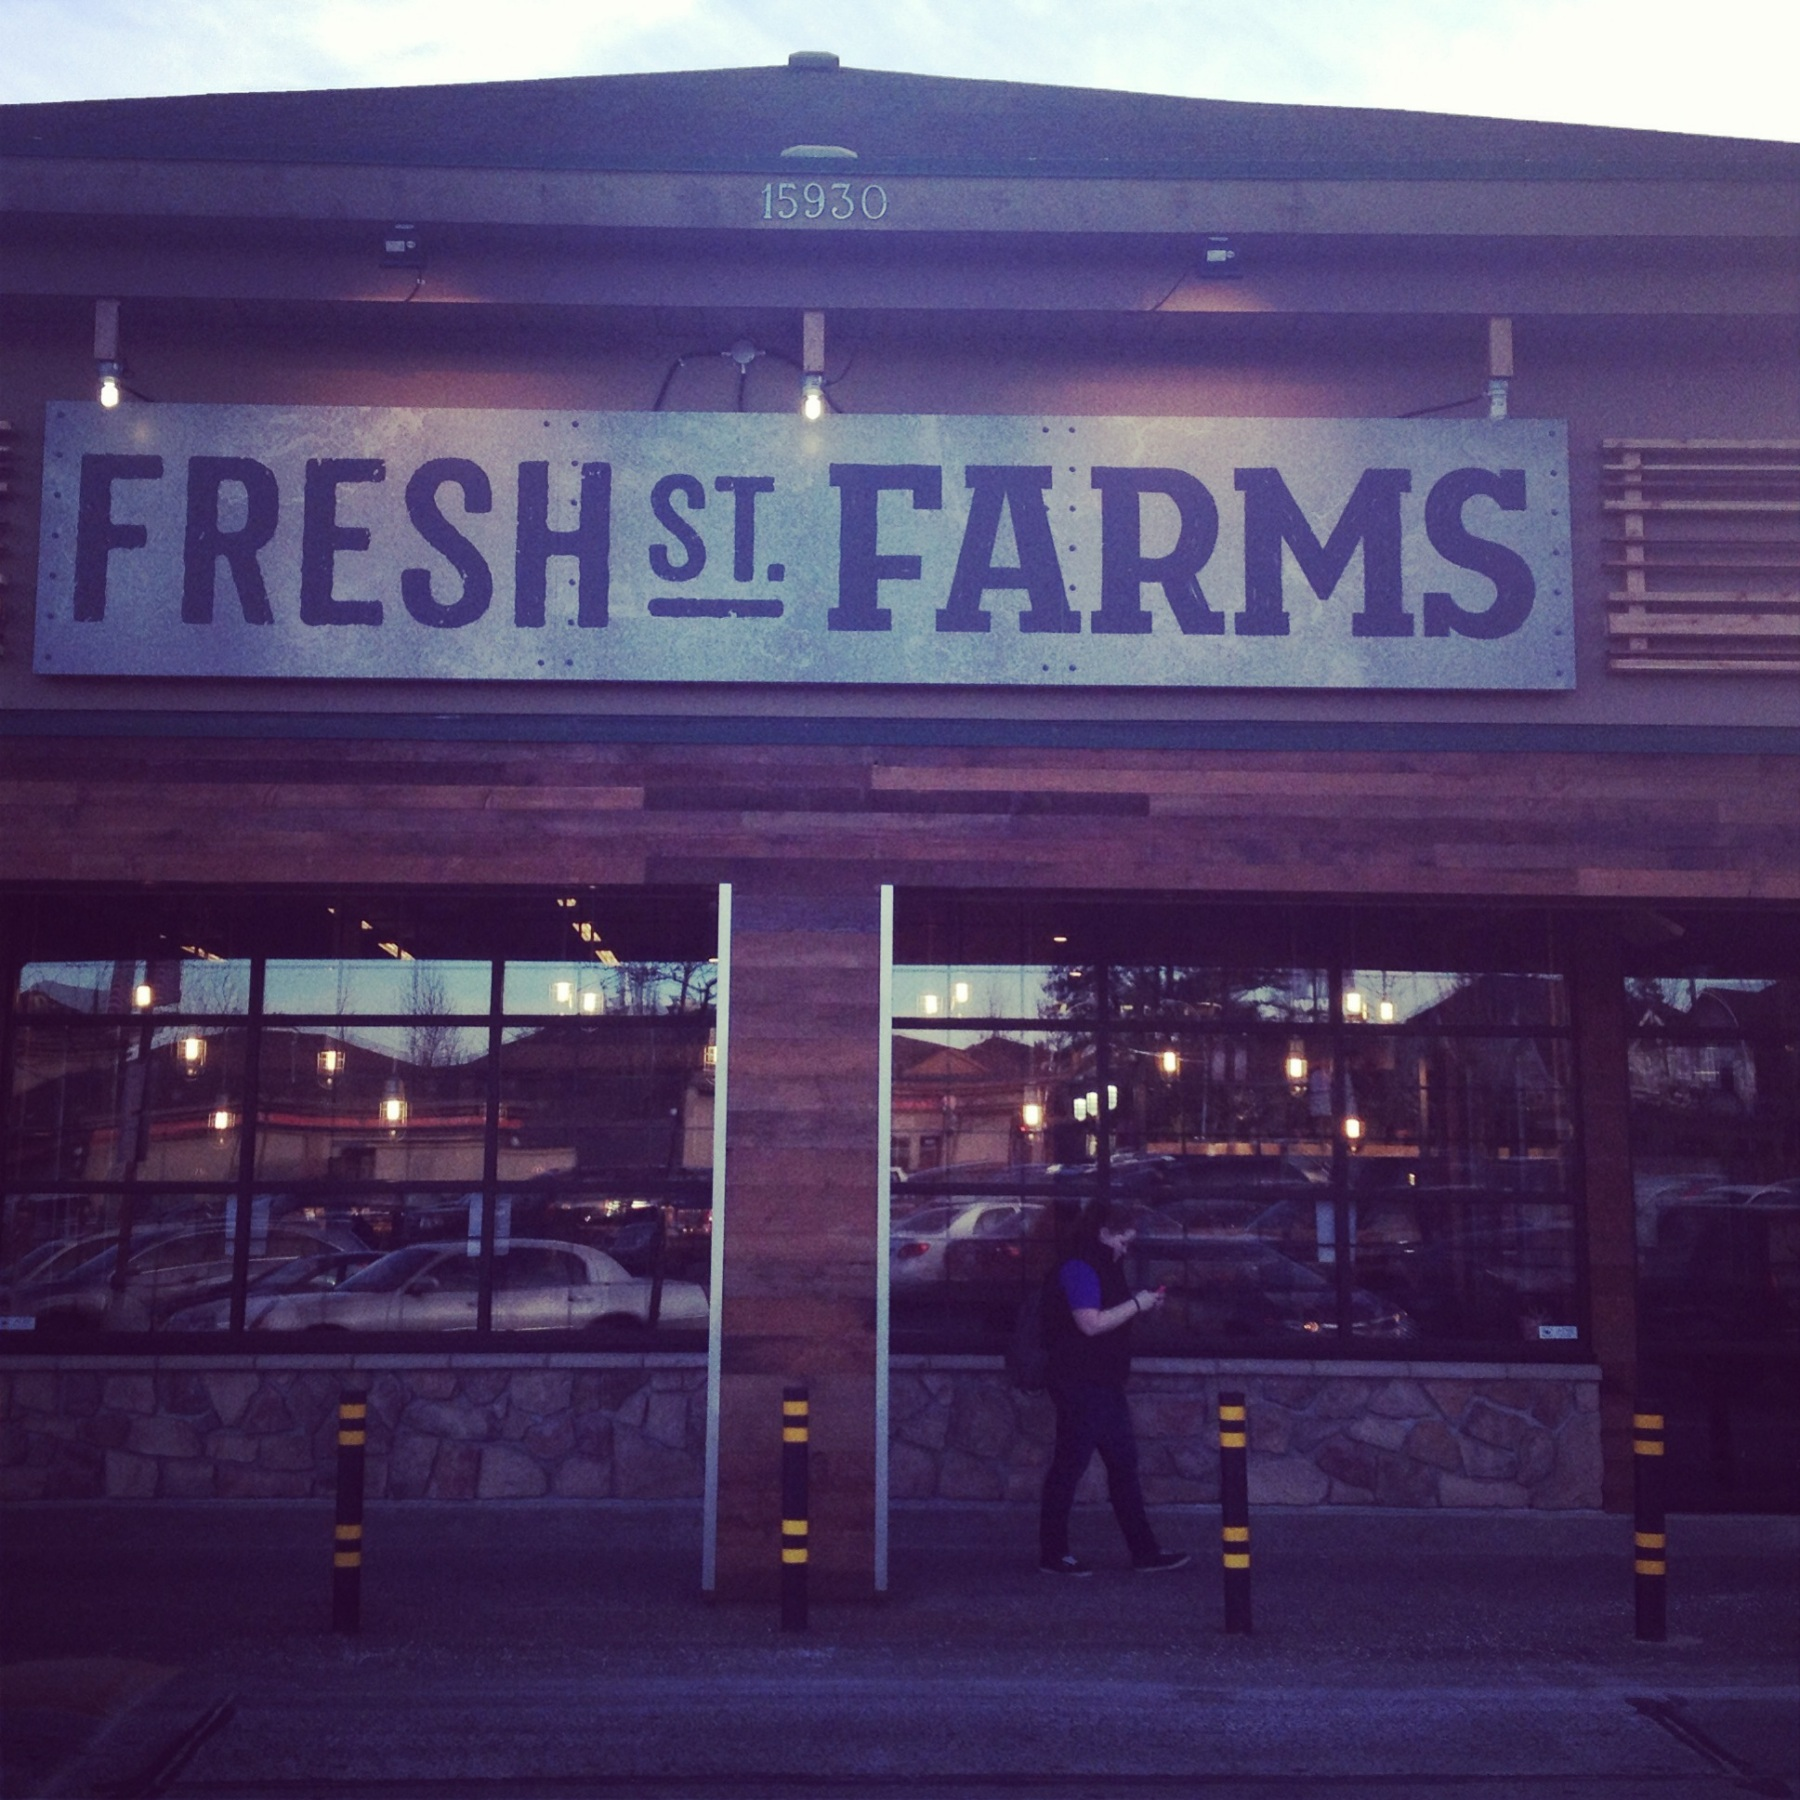 Fresh St. Farms